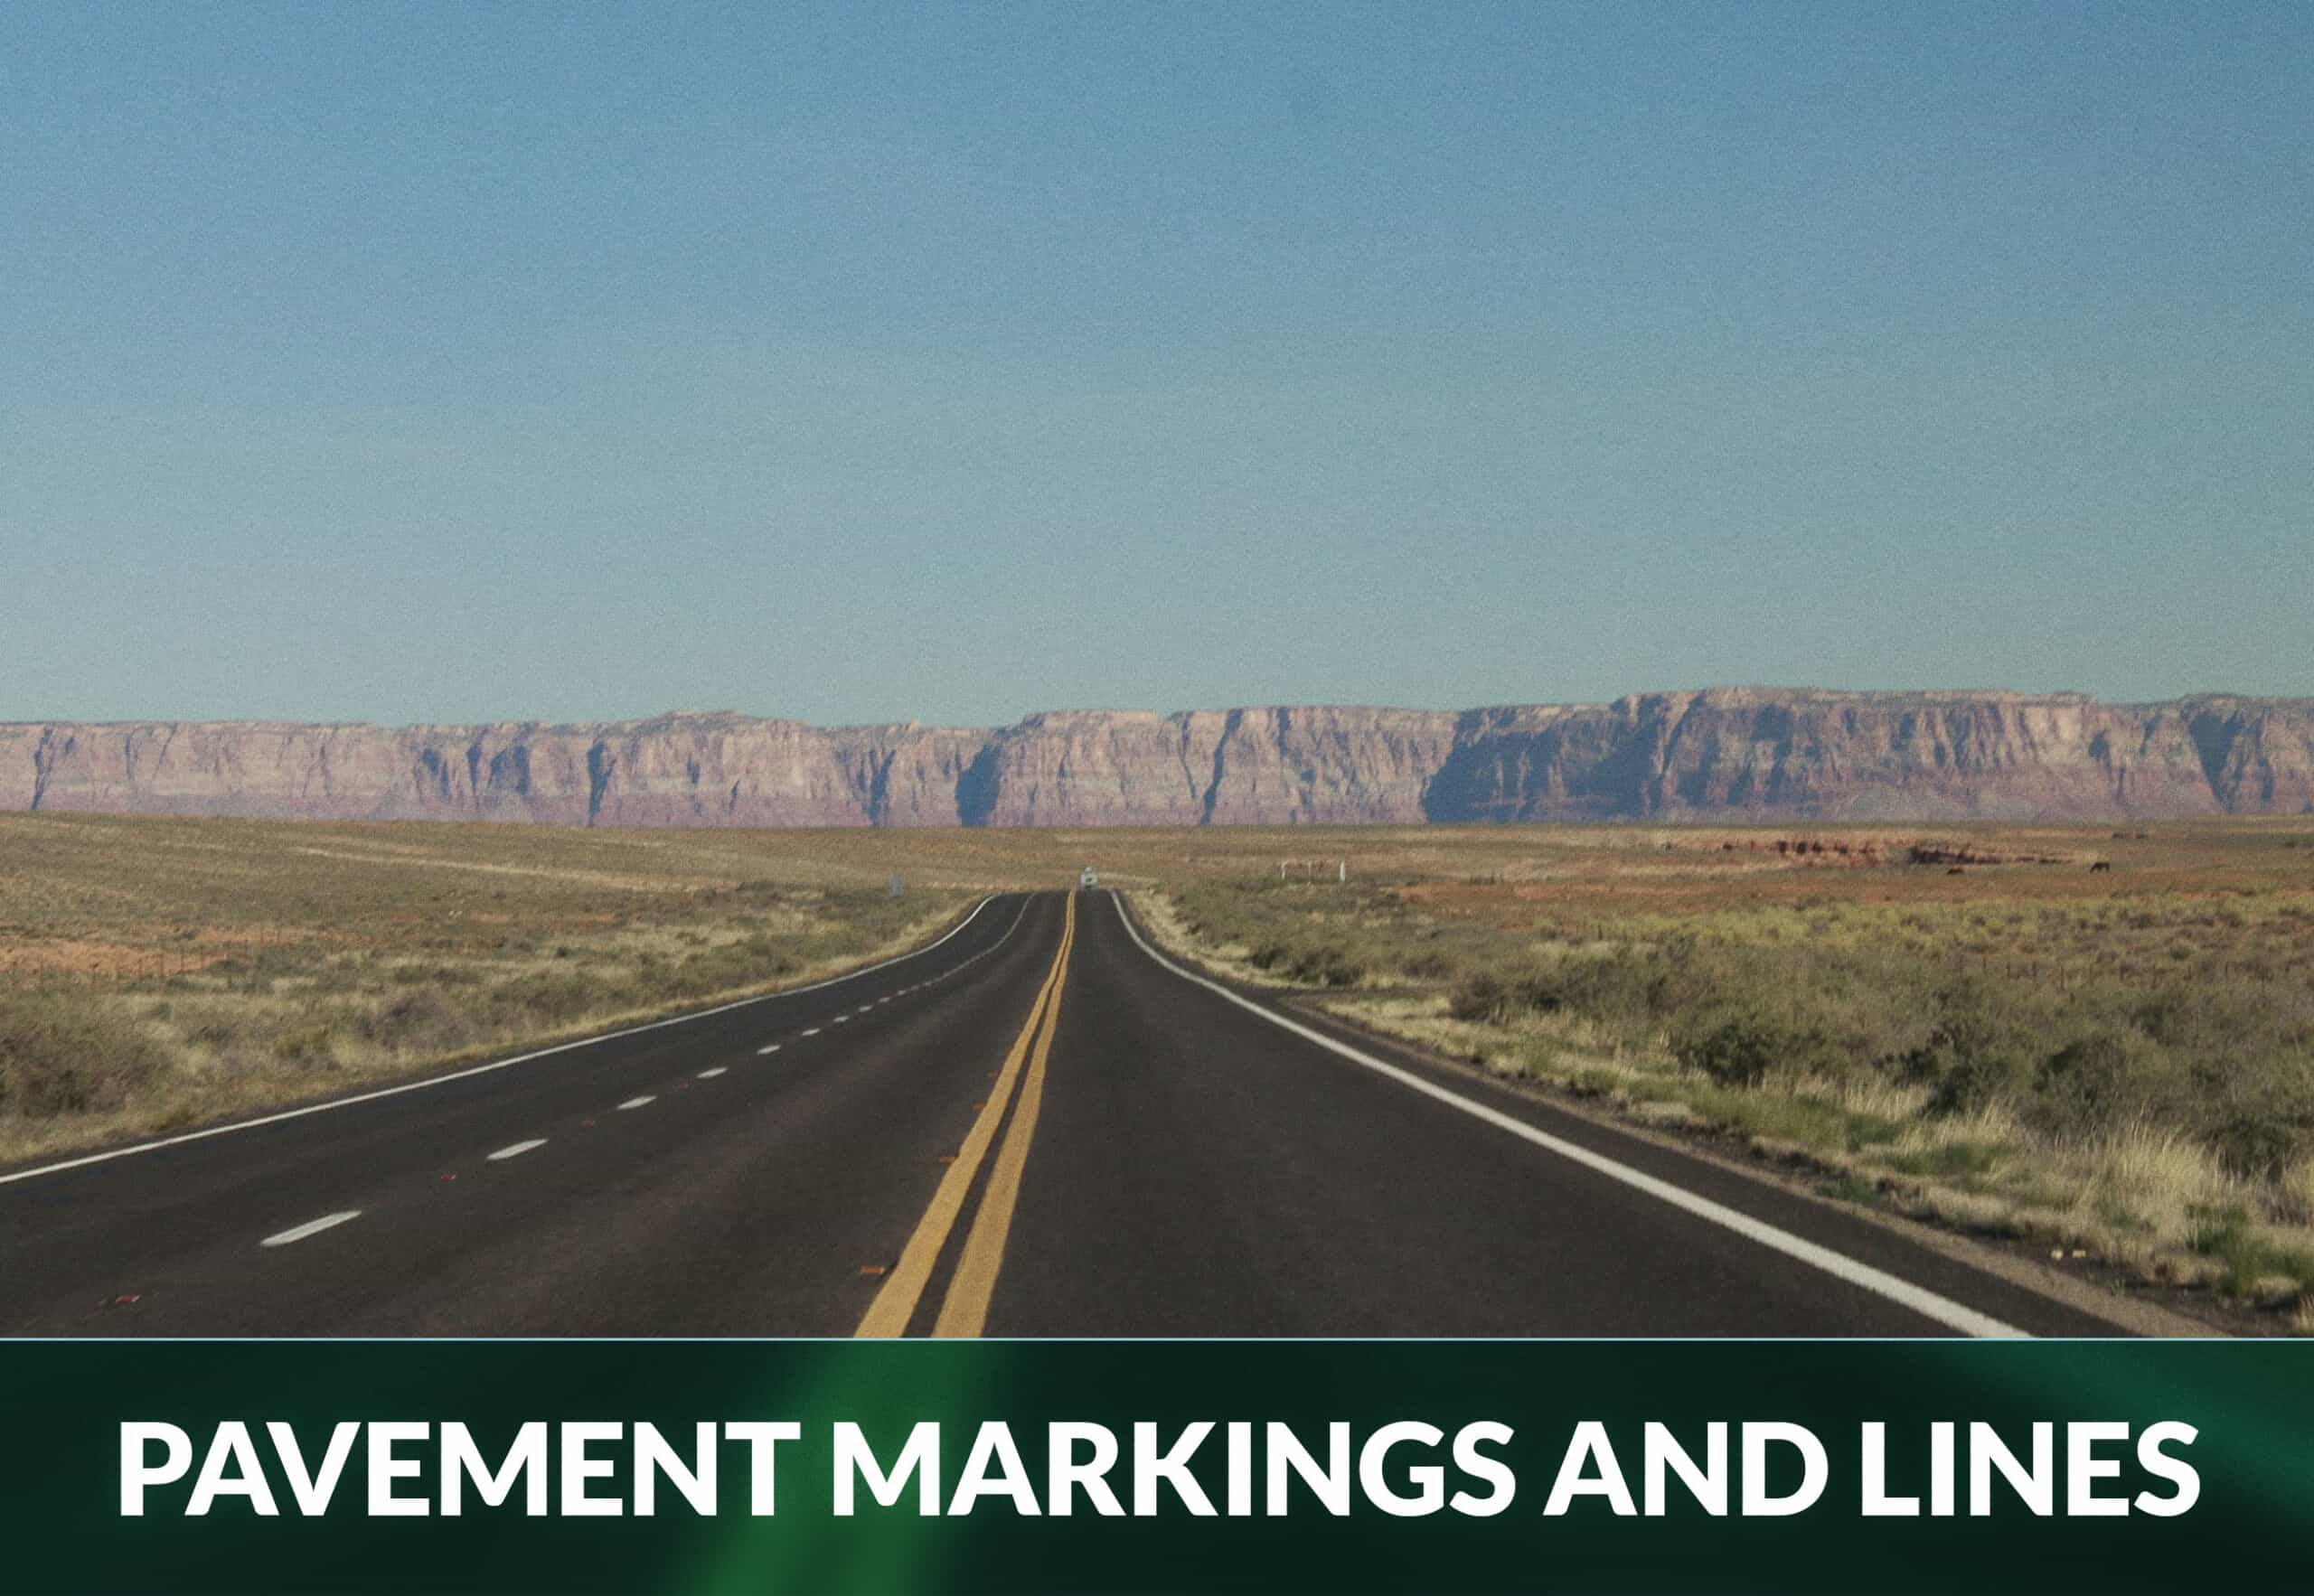 PAVEMENT MARKINGS AND LINES